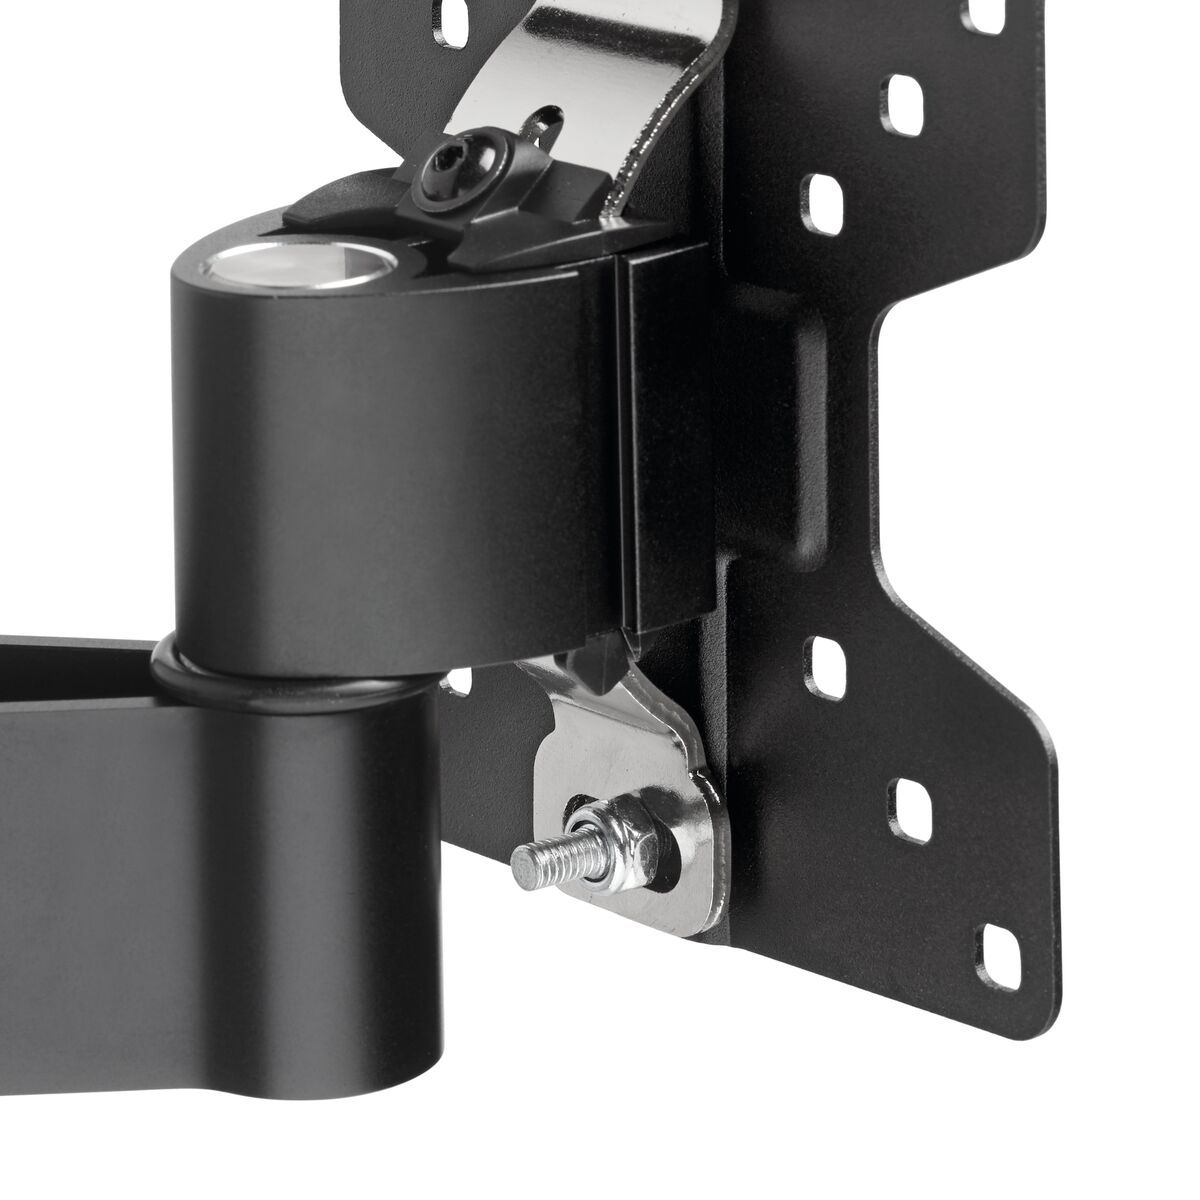 Vogel's PFW 1030 Display wall mount turn & tilt - Detail